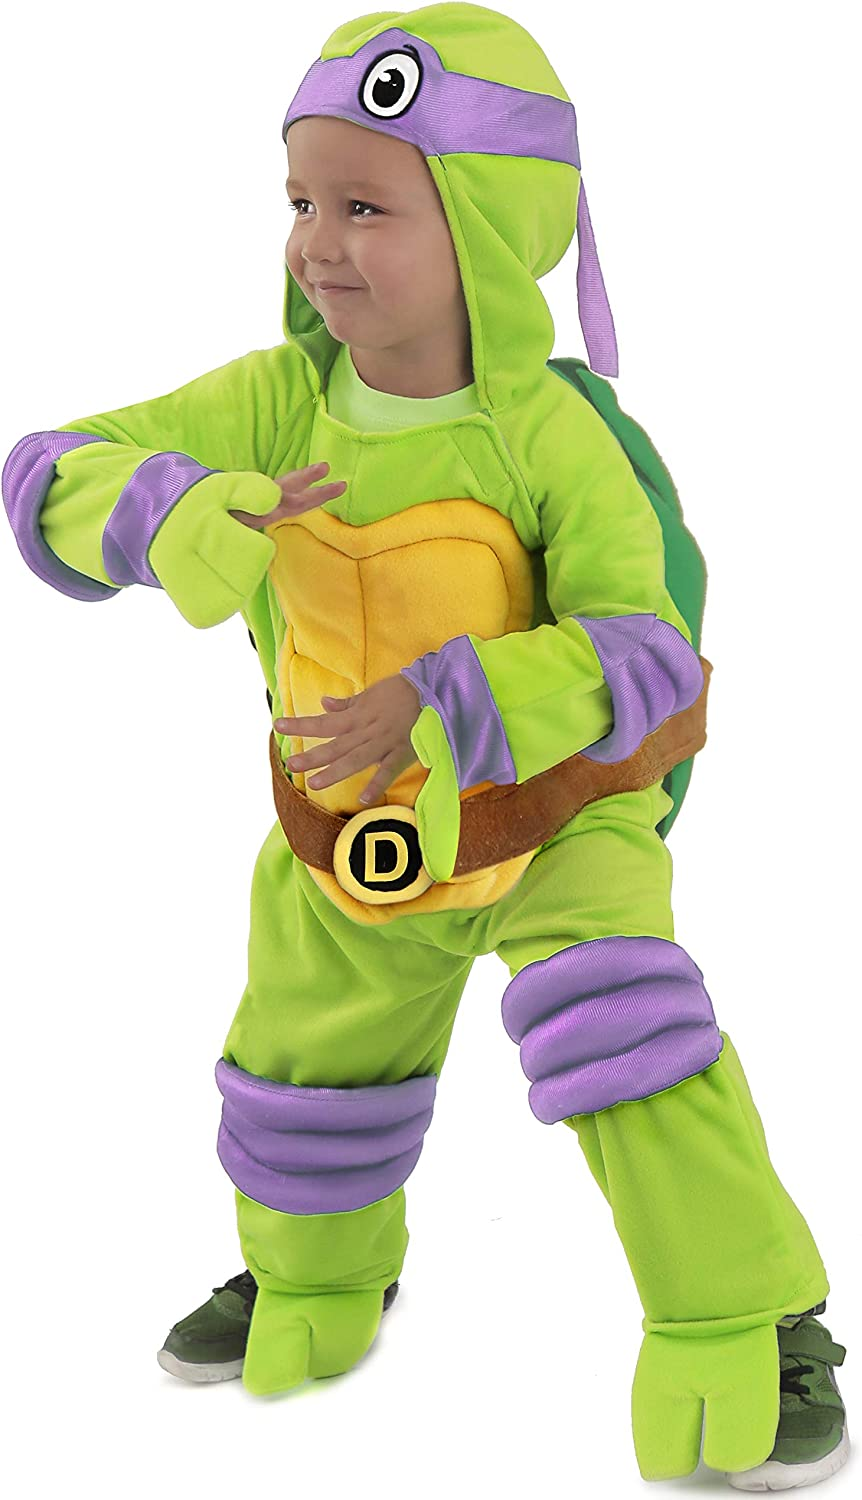 Baby's Teenage Mutant Ninja Turtles Costume Donatello